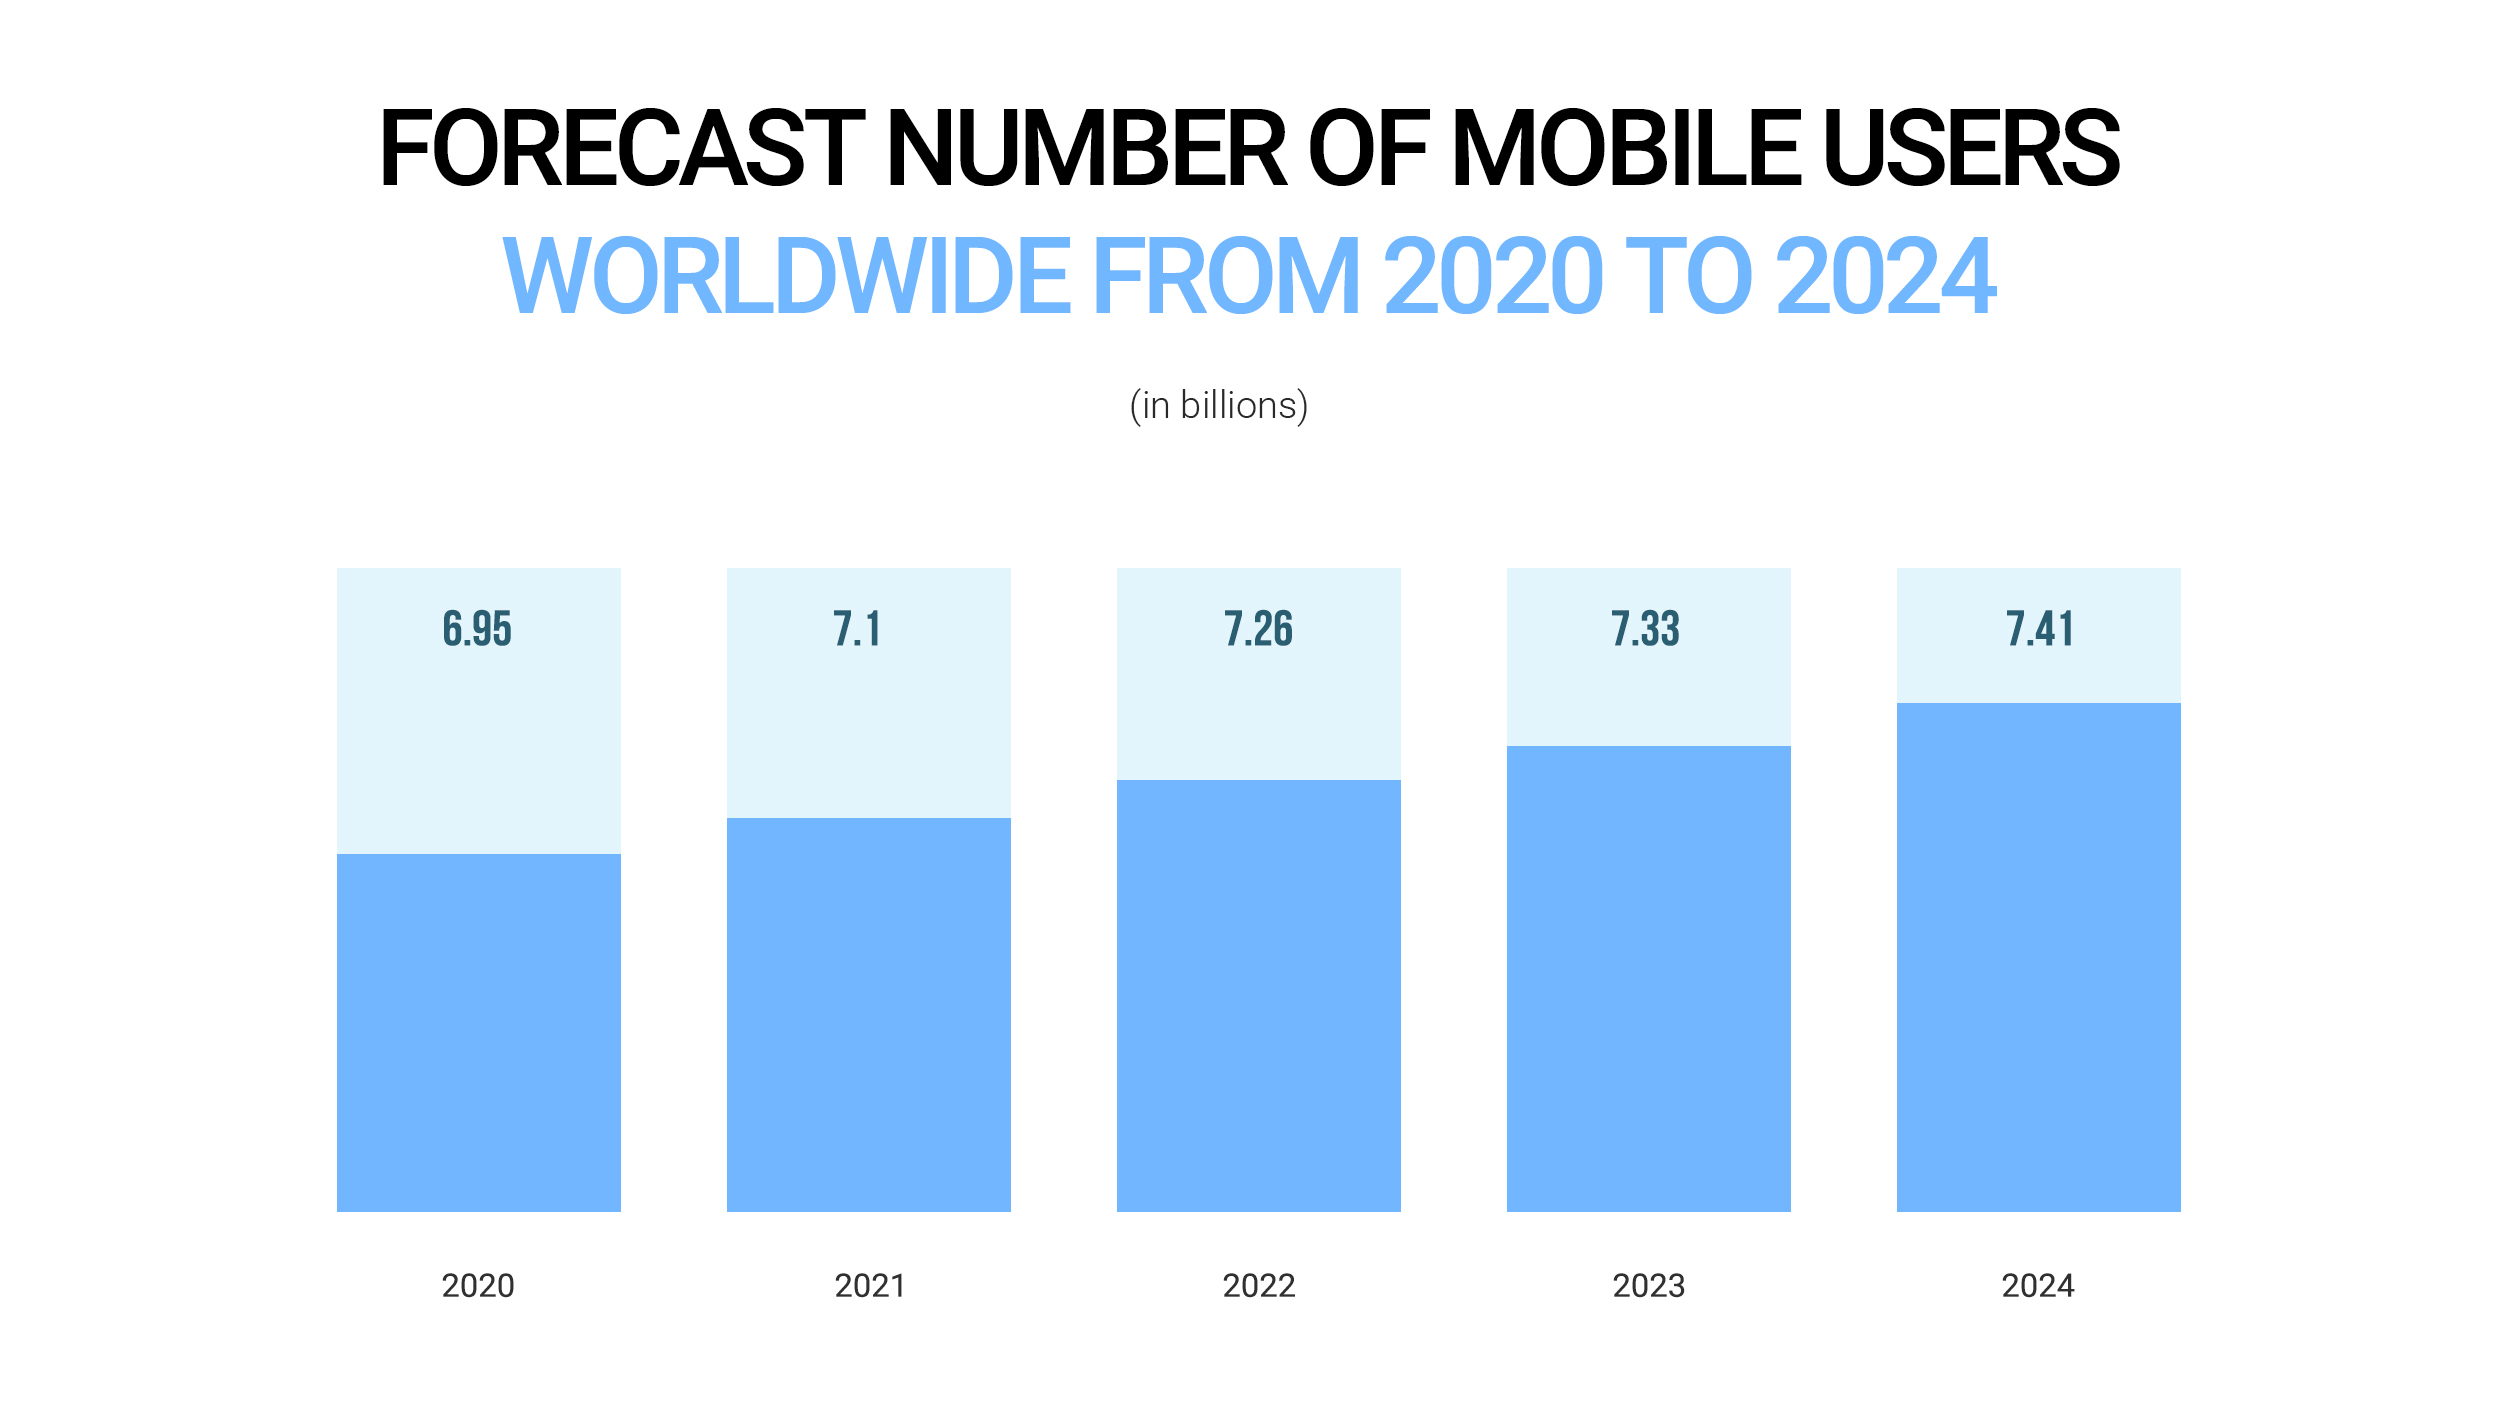 Forecast number of mobile users worldwide from 2020 to 2024